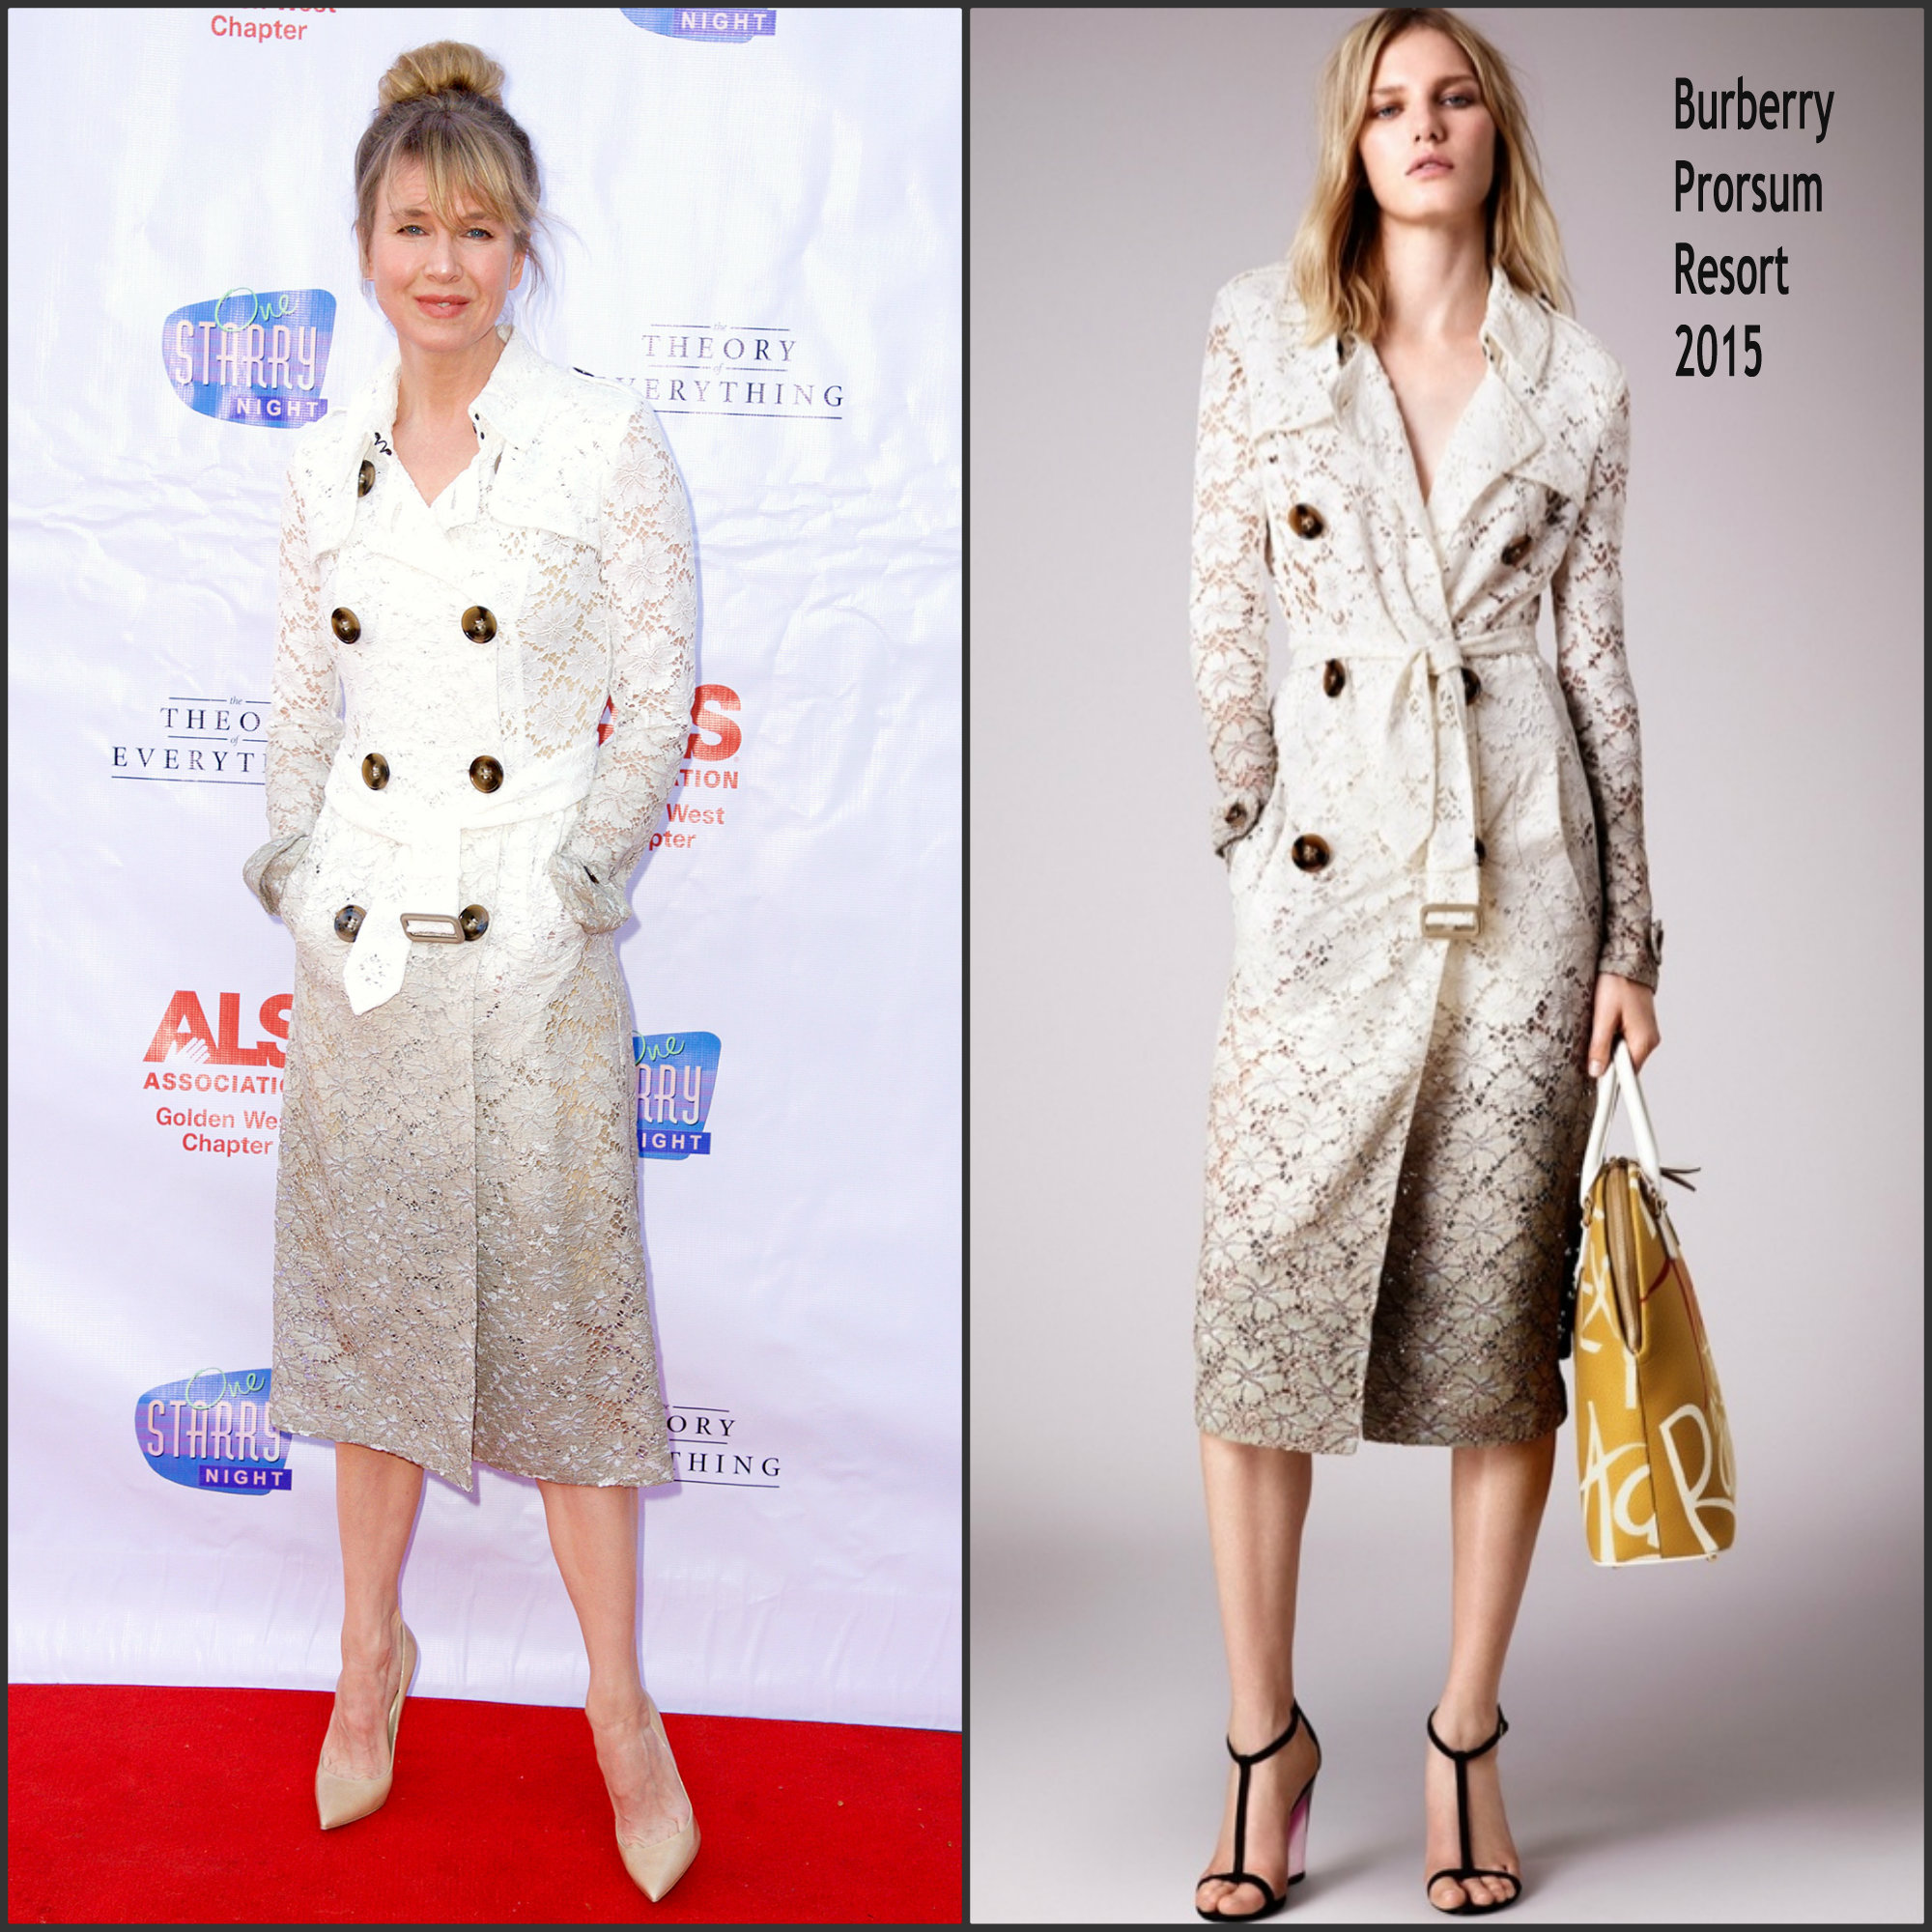 Renee-Zellweger-in-Burberry-Prorsum--One-Starry-Night-From-Broadway-to-Hollywood-Event